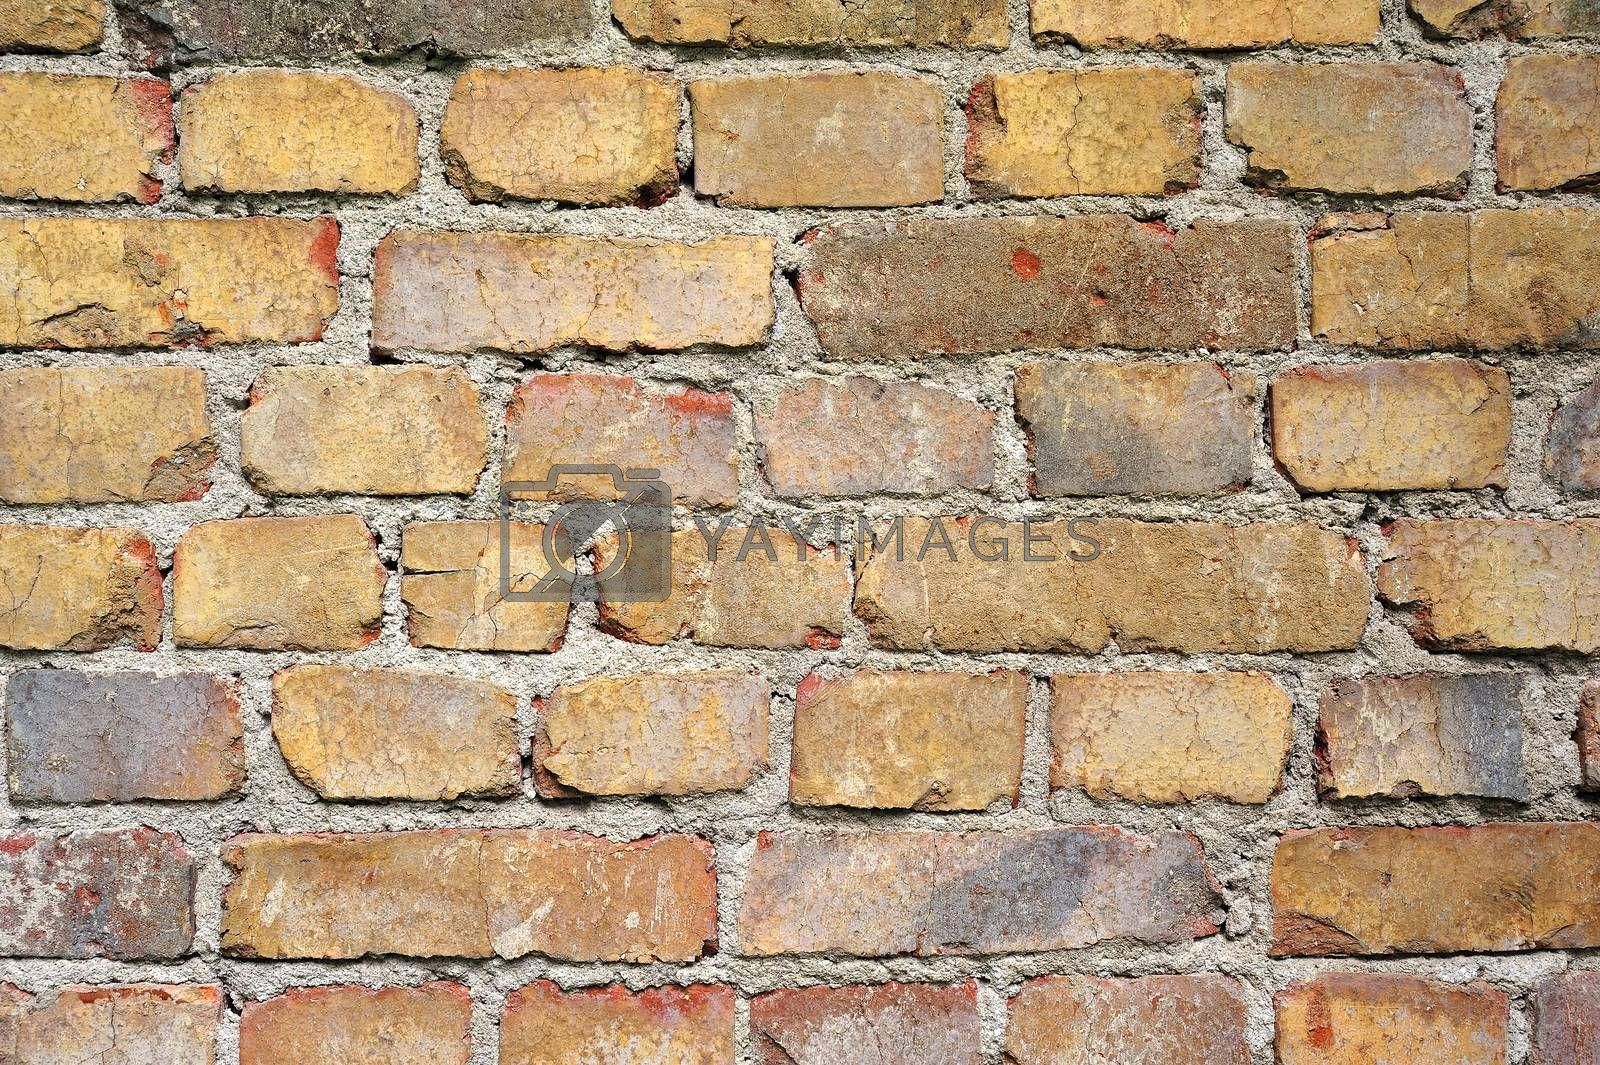 Patterned brick wall by a40757